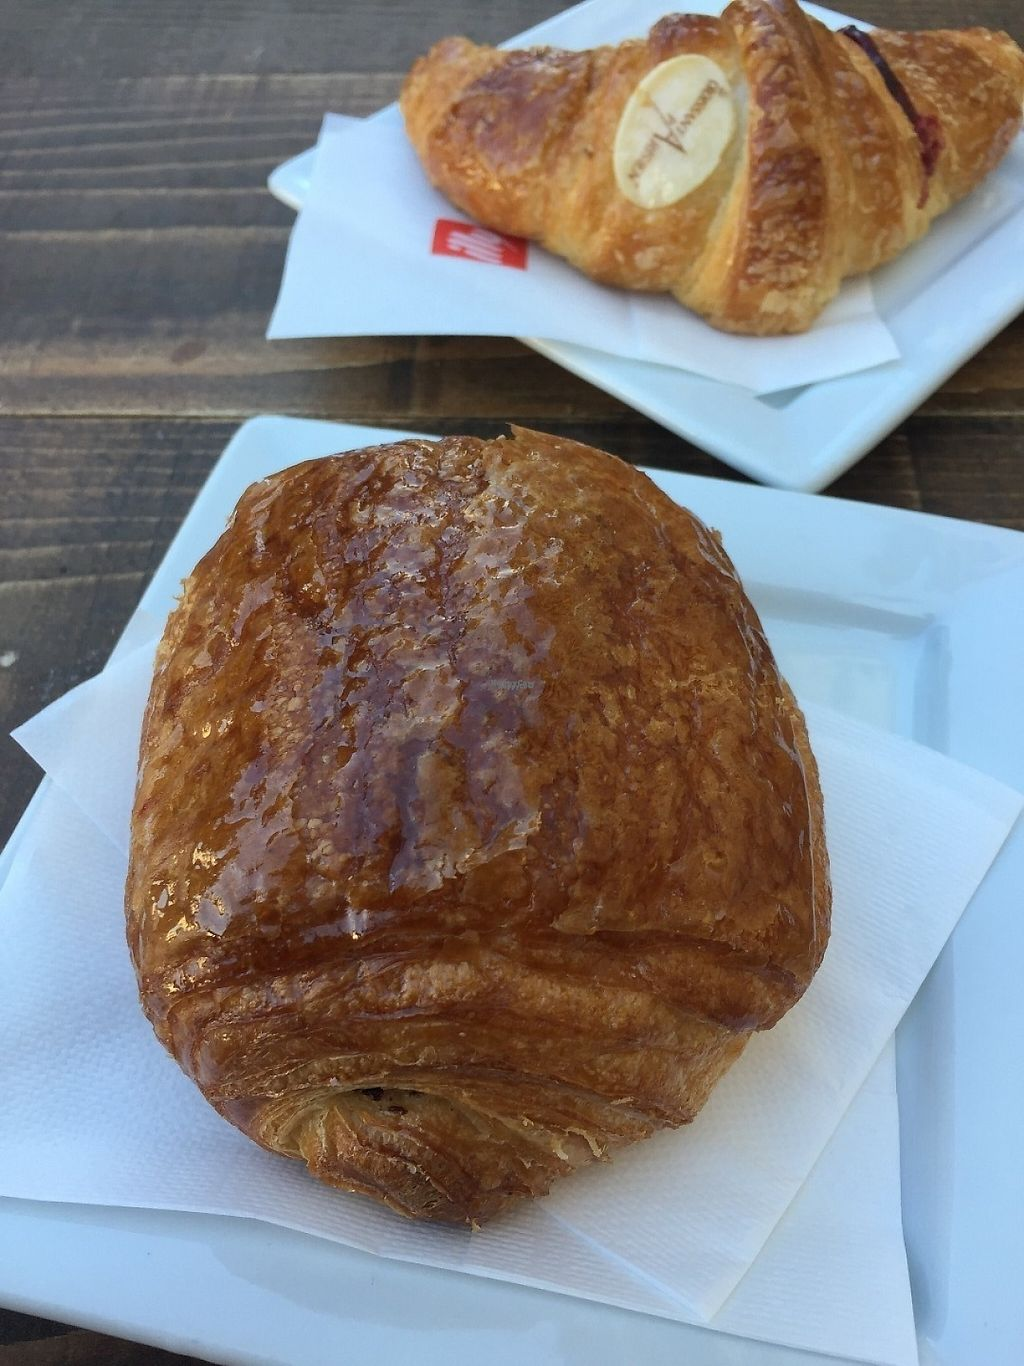 """Photo of Shake Cafe - Degli Avelli  by <a href=""""/members/profile/VeganPrairieGirl"""">VeganPrairieGirl</a> <br/>Two Vegan Brioche/Croissants  The back one with Jam, the front is with chocolate <br/> March 22, 2017  - <a href='/contact/abuse/image/52235/239600'>Report</a>"""